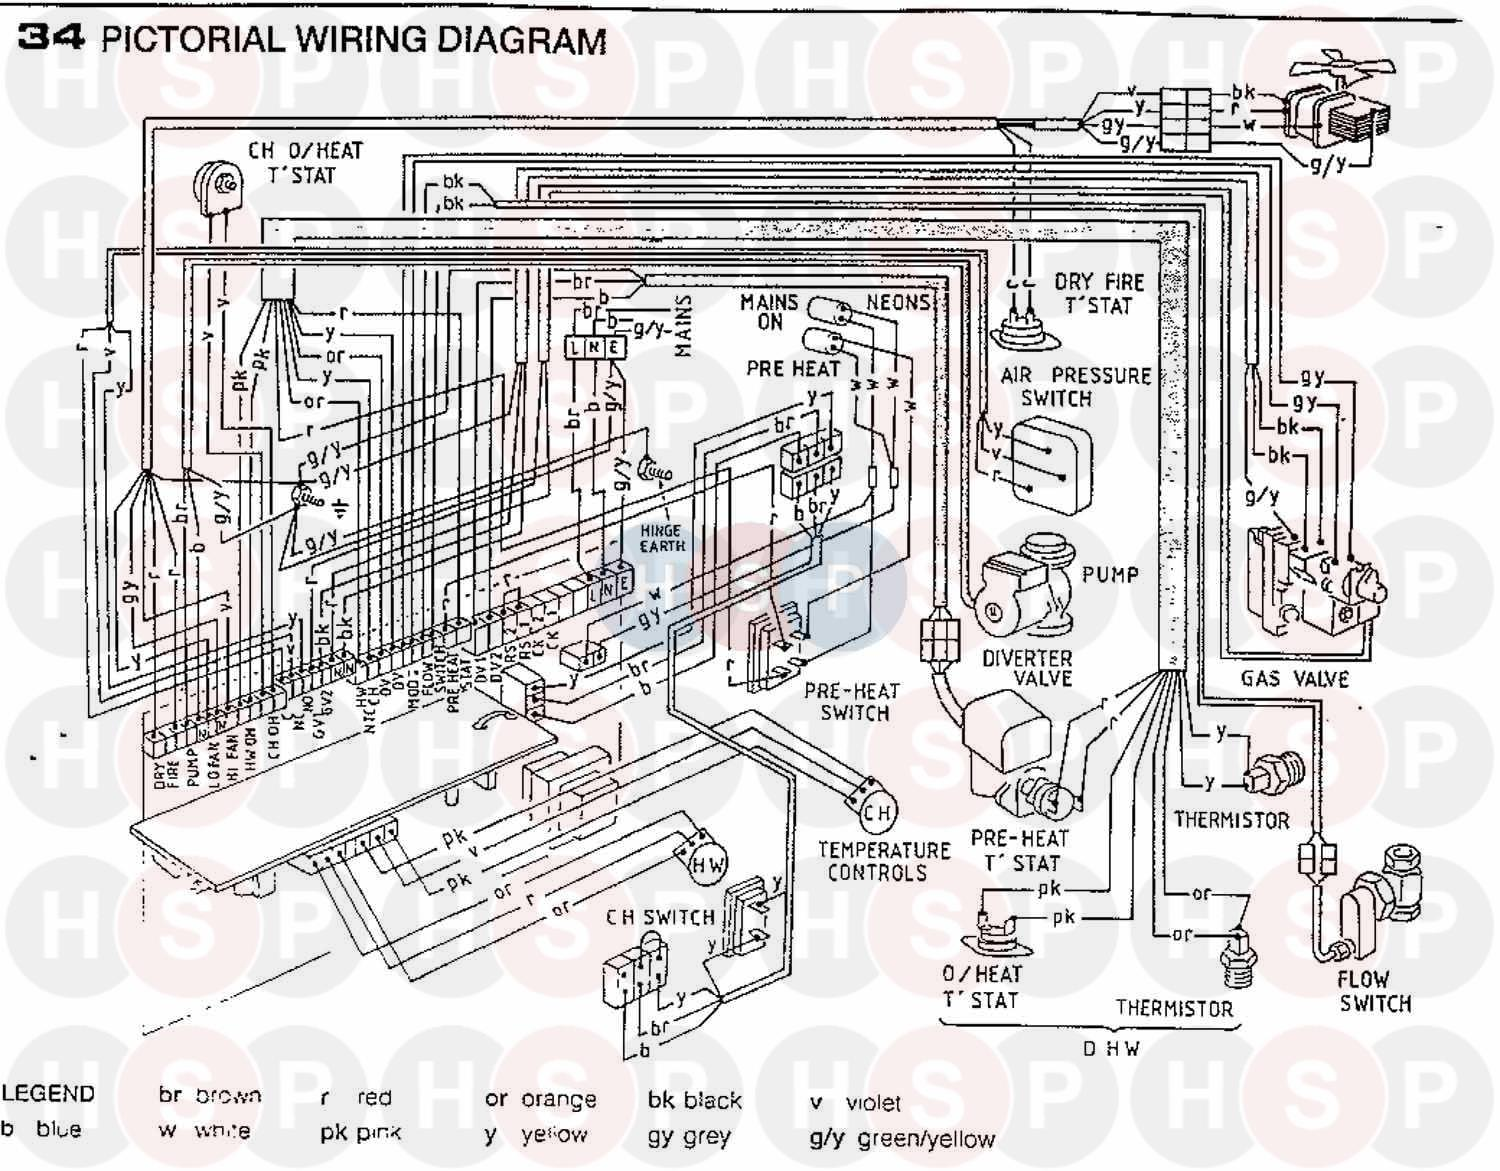 Ideal Sprint Rapide 90nf Wiring Diagram 2 Heating Spare Air Pressor Click The To Open It On A New Page